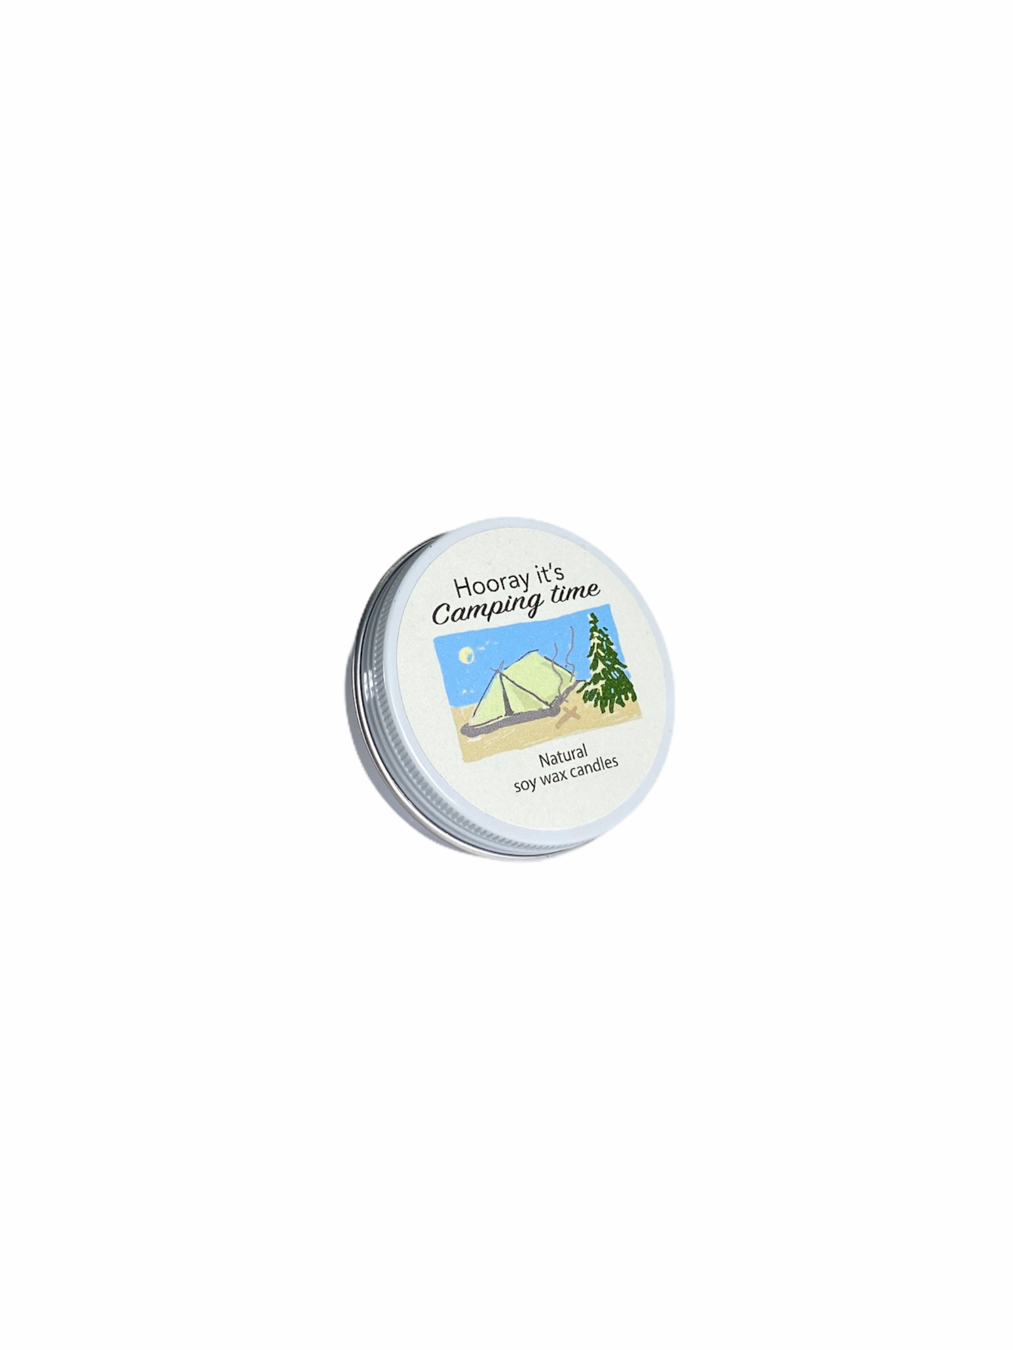 Camping Time Cassette Soy Wax Candle